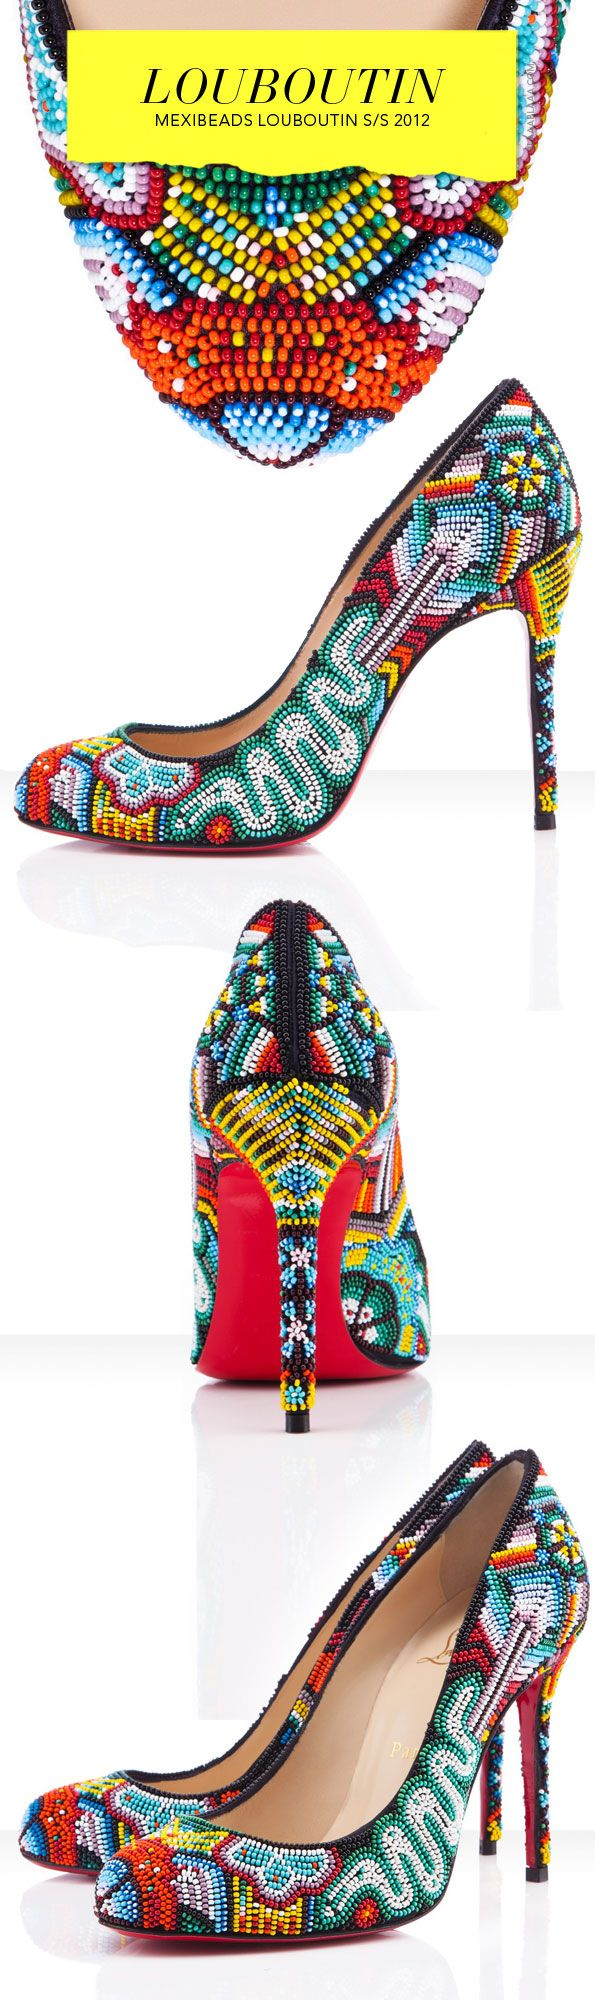 Mexibeads Louboutin: pumps inspired in Huichol art, embroidered with tiny multicolor pearls. <3